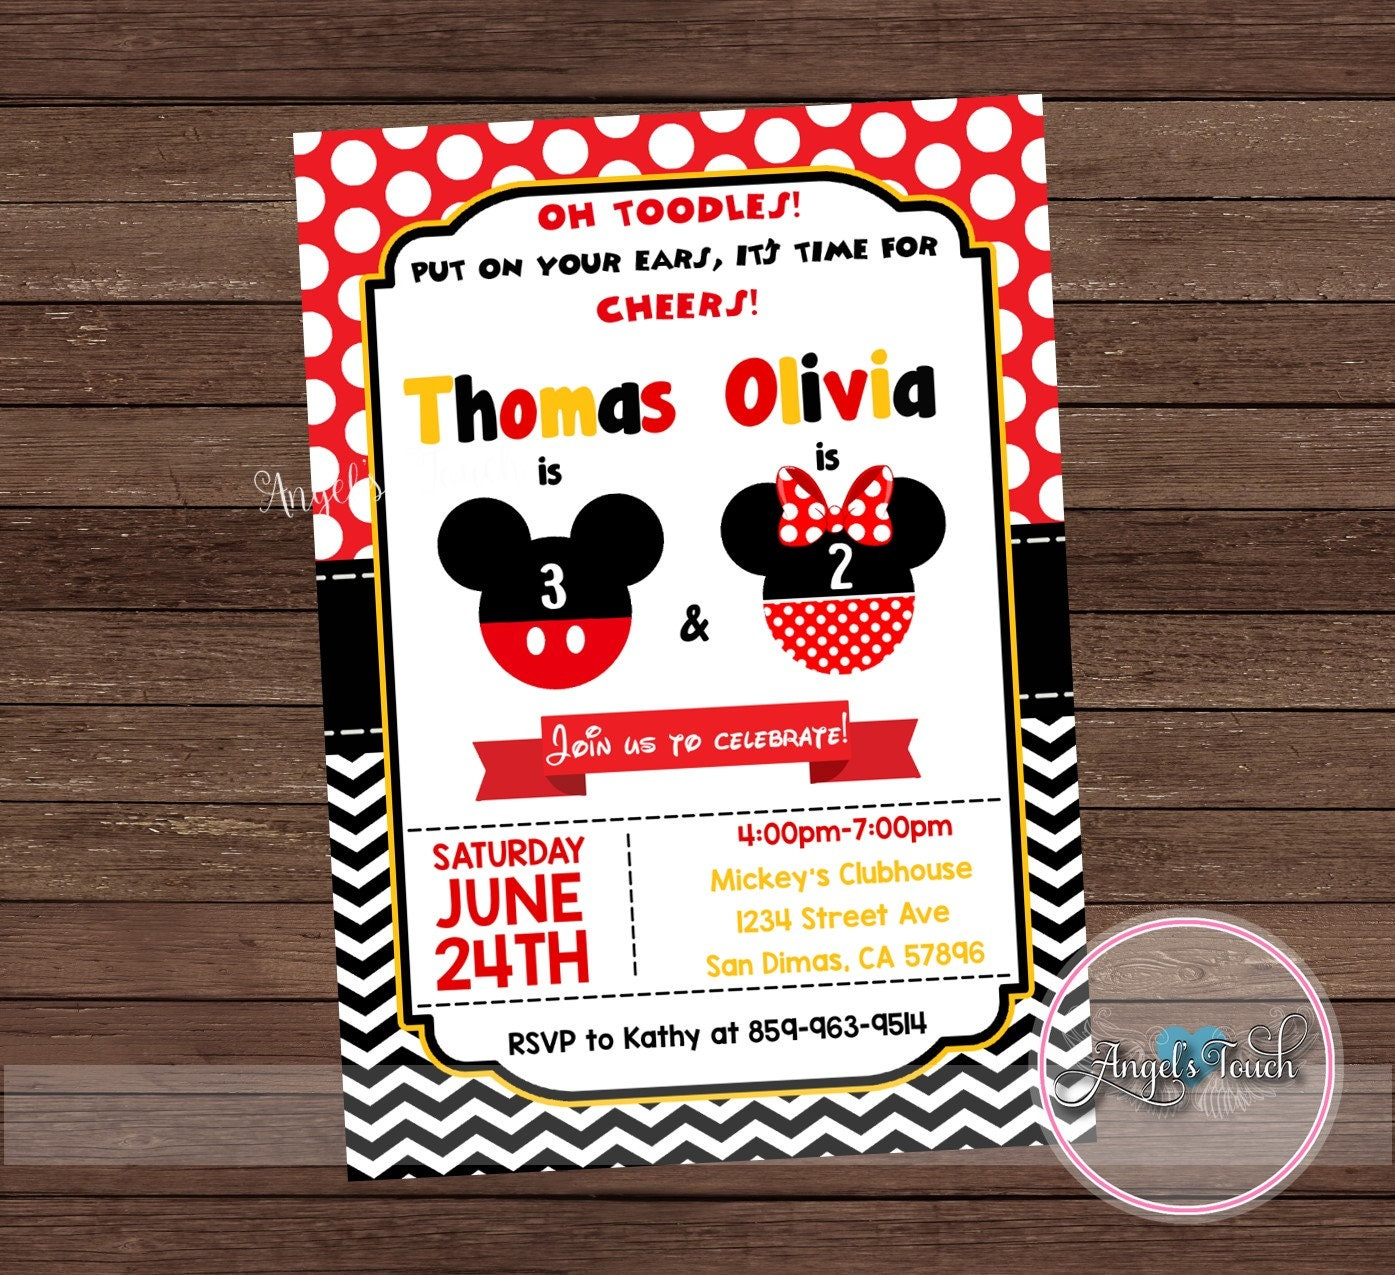 Dorable What To Put On A Party Invitation Mold - Invitations and ...